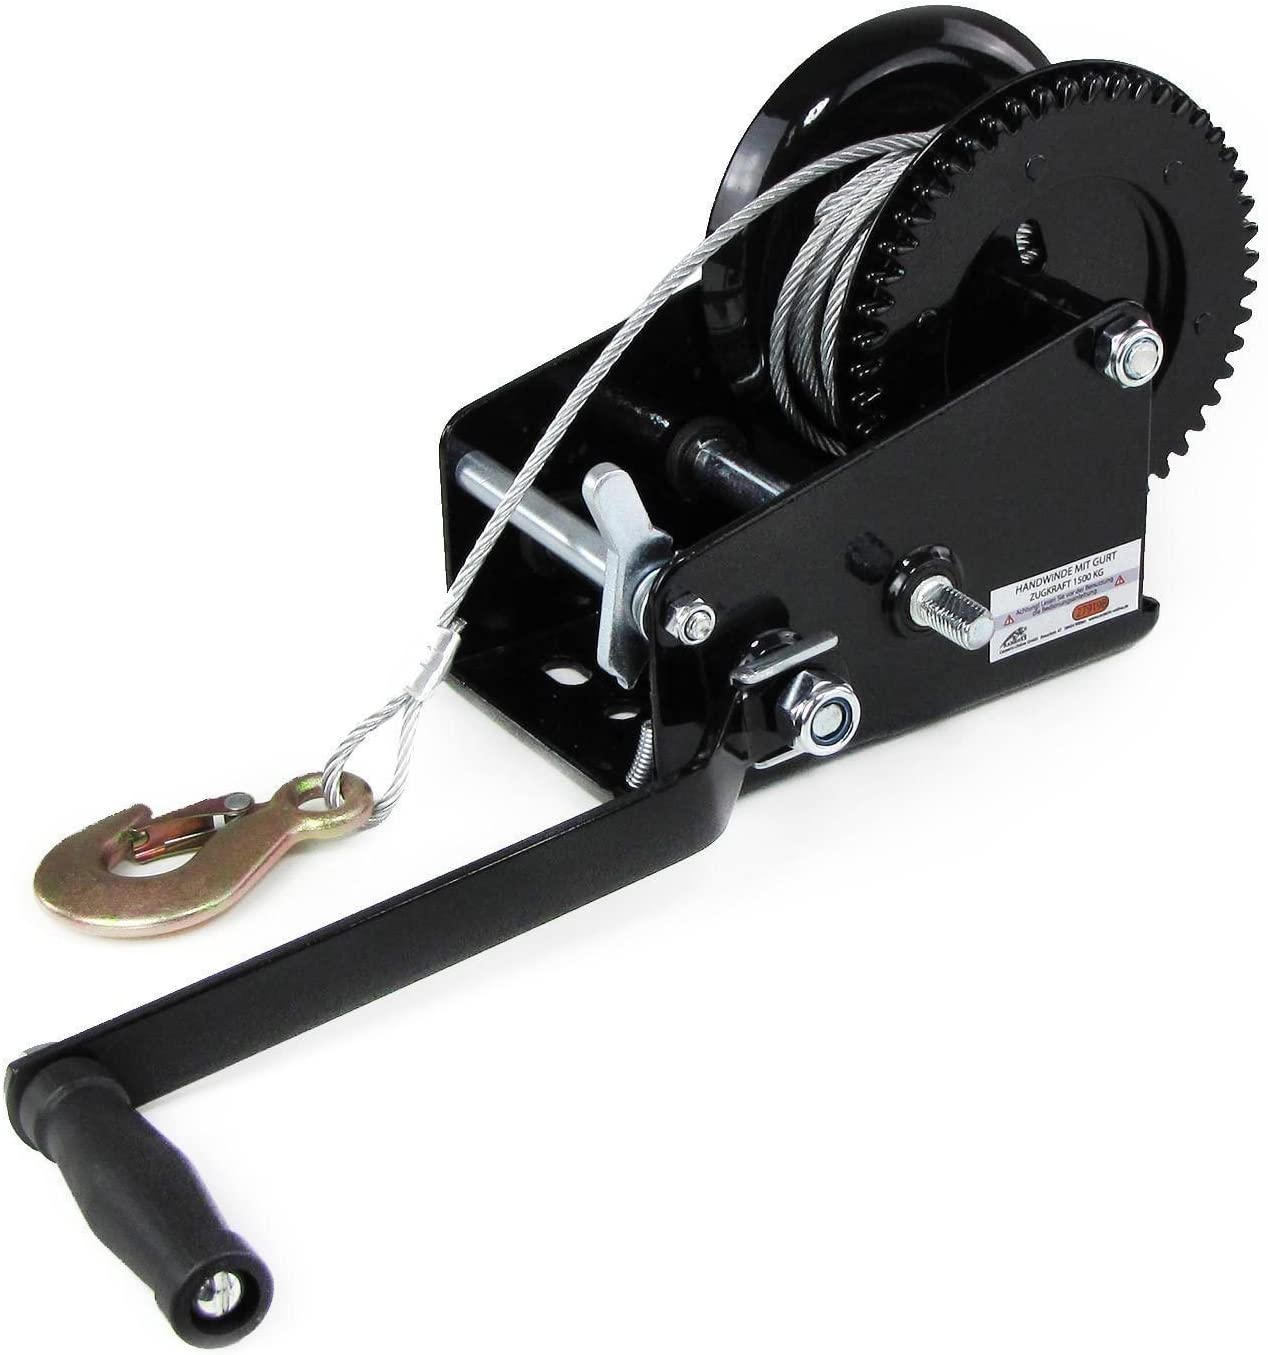 OUBAYLEW 1 x Professional Winch Hand Winch with Wire Rope 10 m and up to 1500 kg